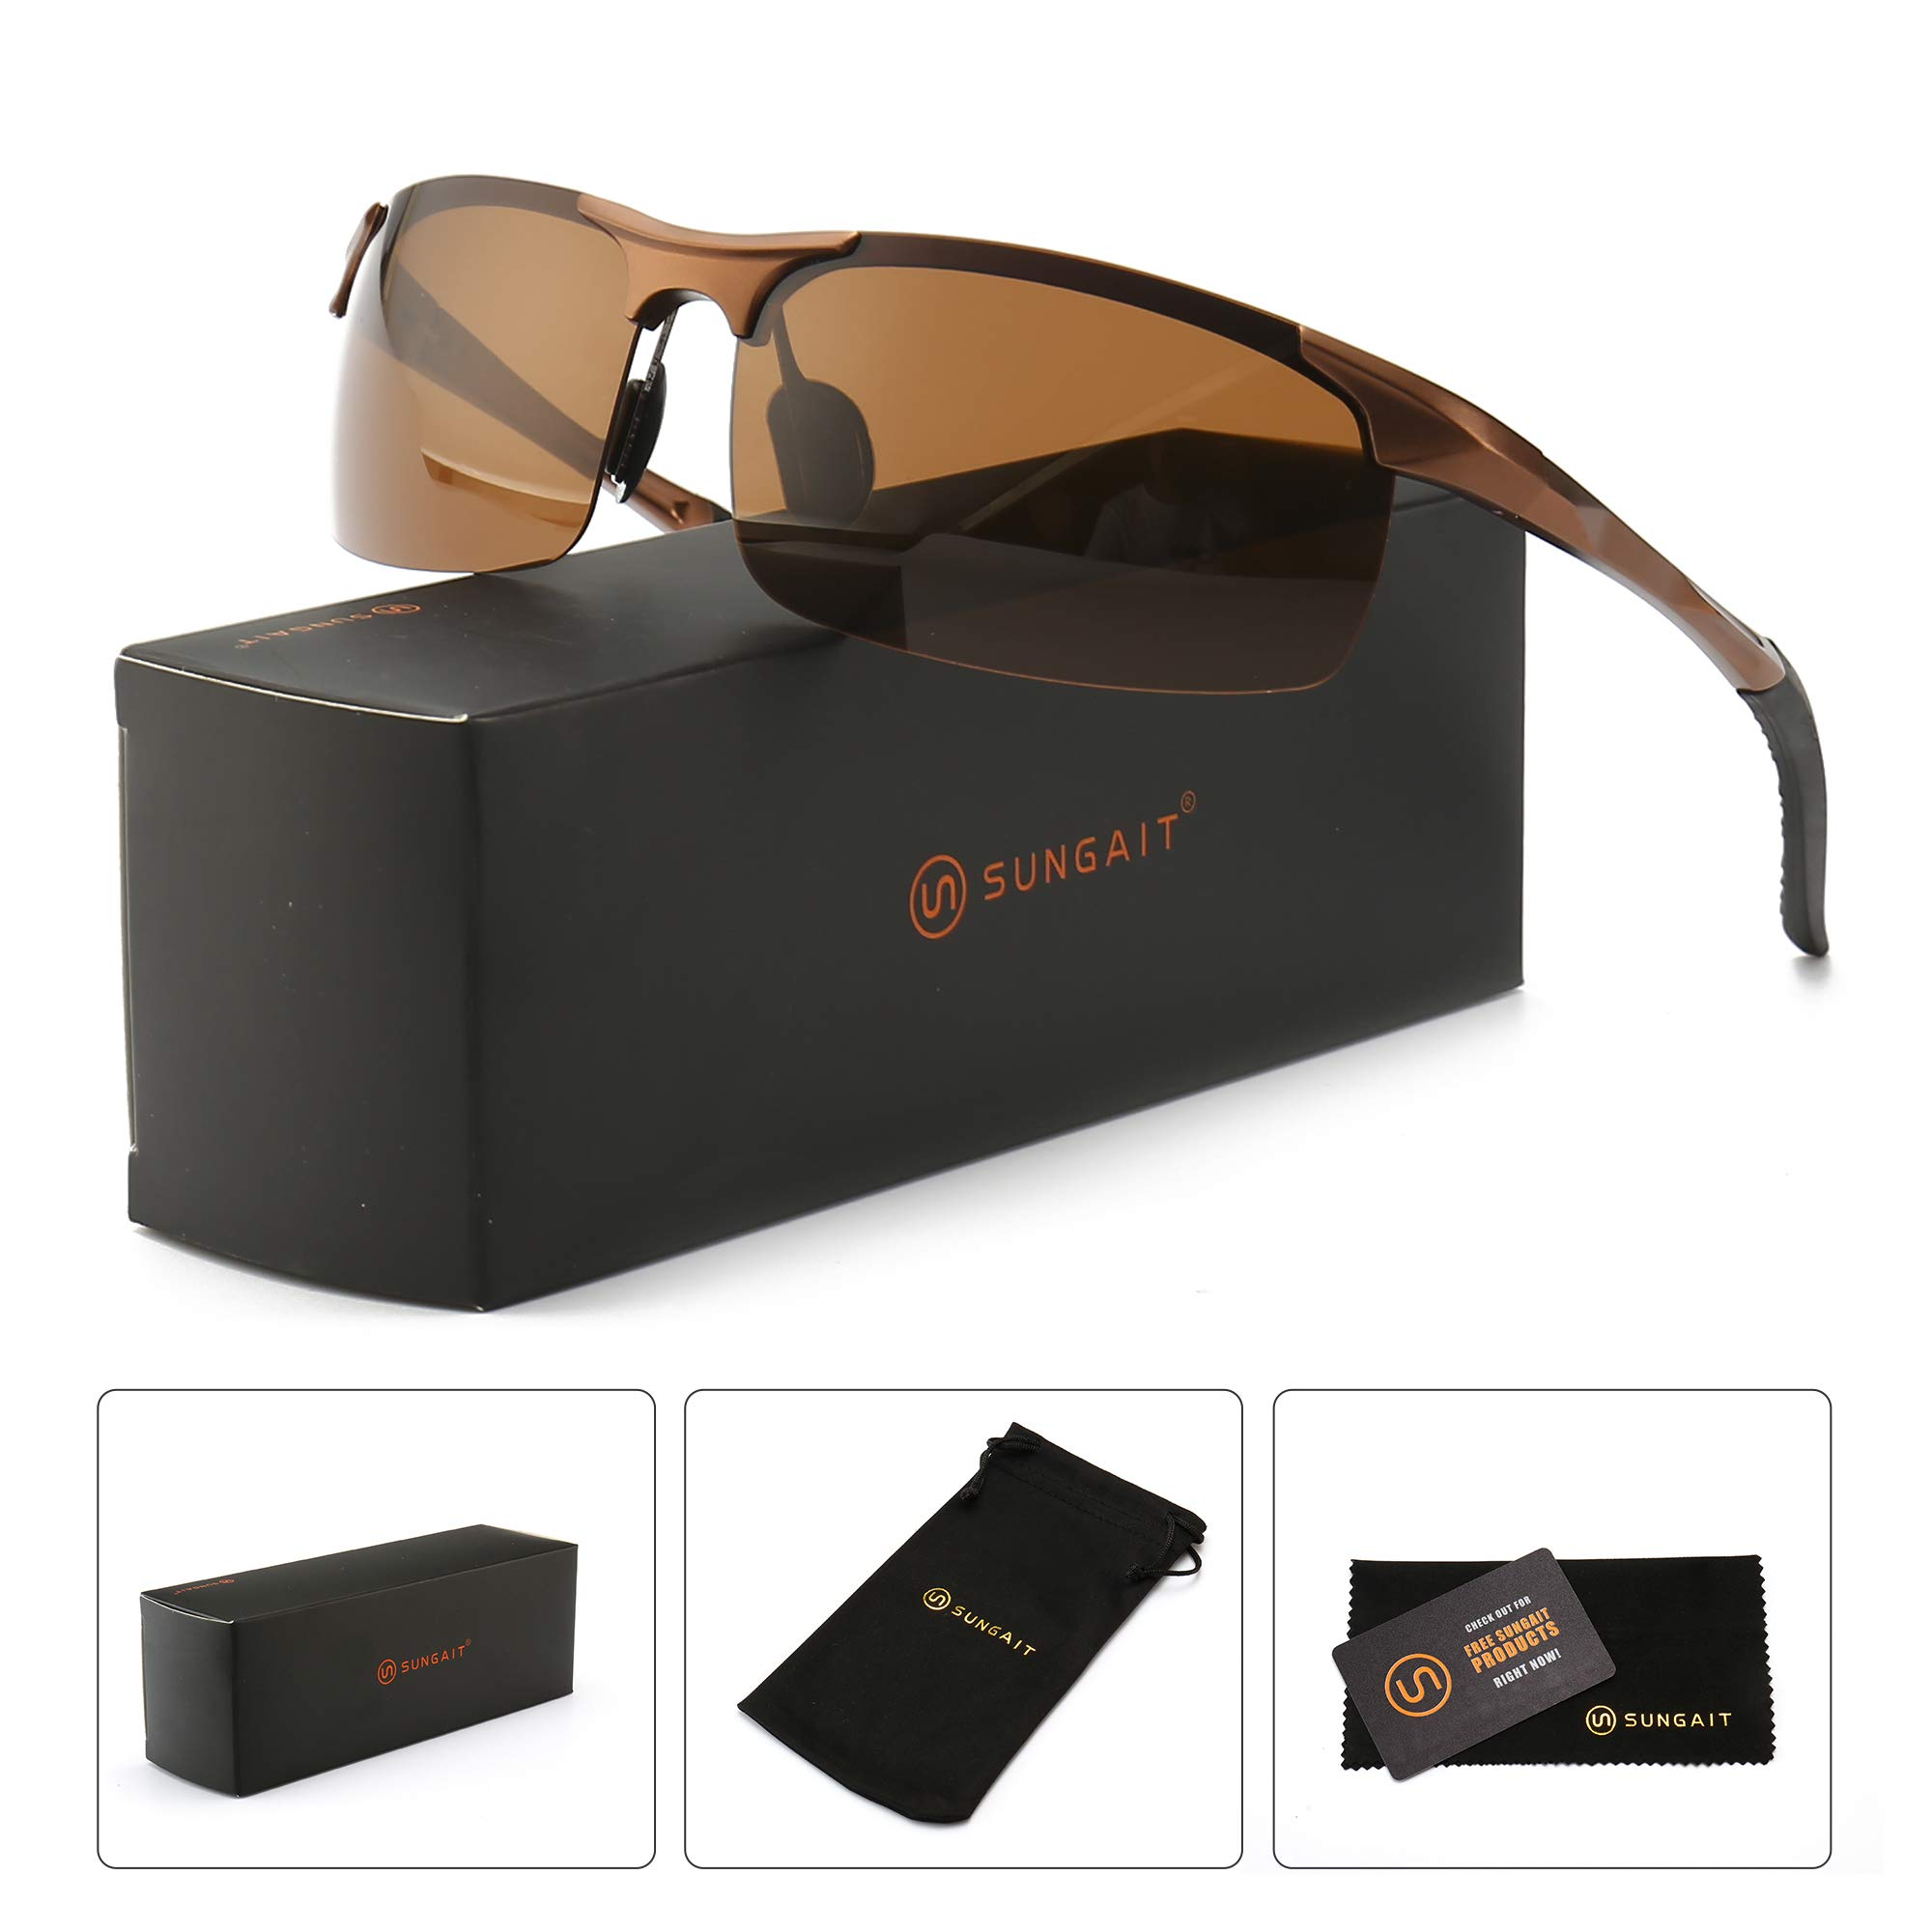 SUNGAIT Men's HD Polarized Sunglasses for Driving Fishing Cycling Running Metal Frame UV400 (Brown Frame Brown Lens) 8177CKC